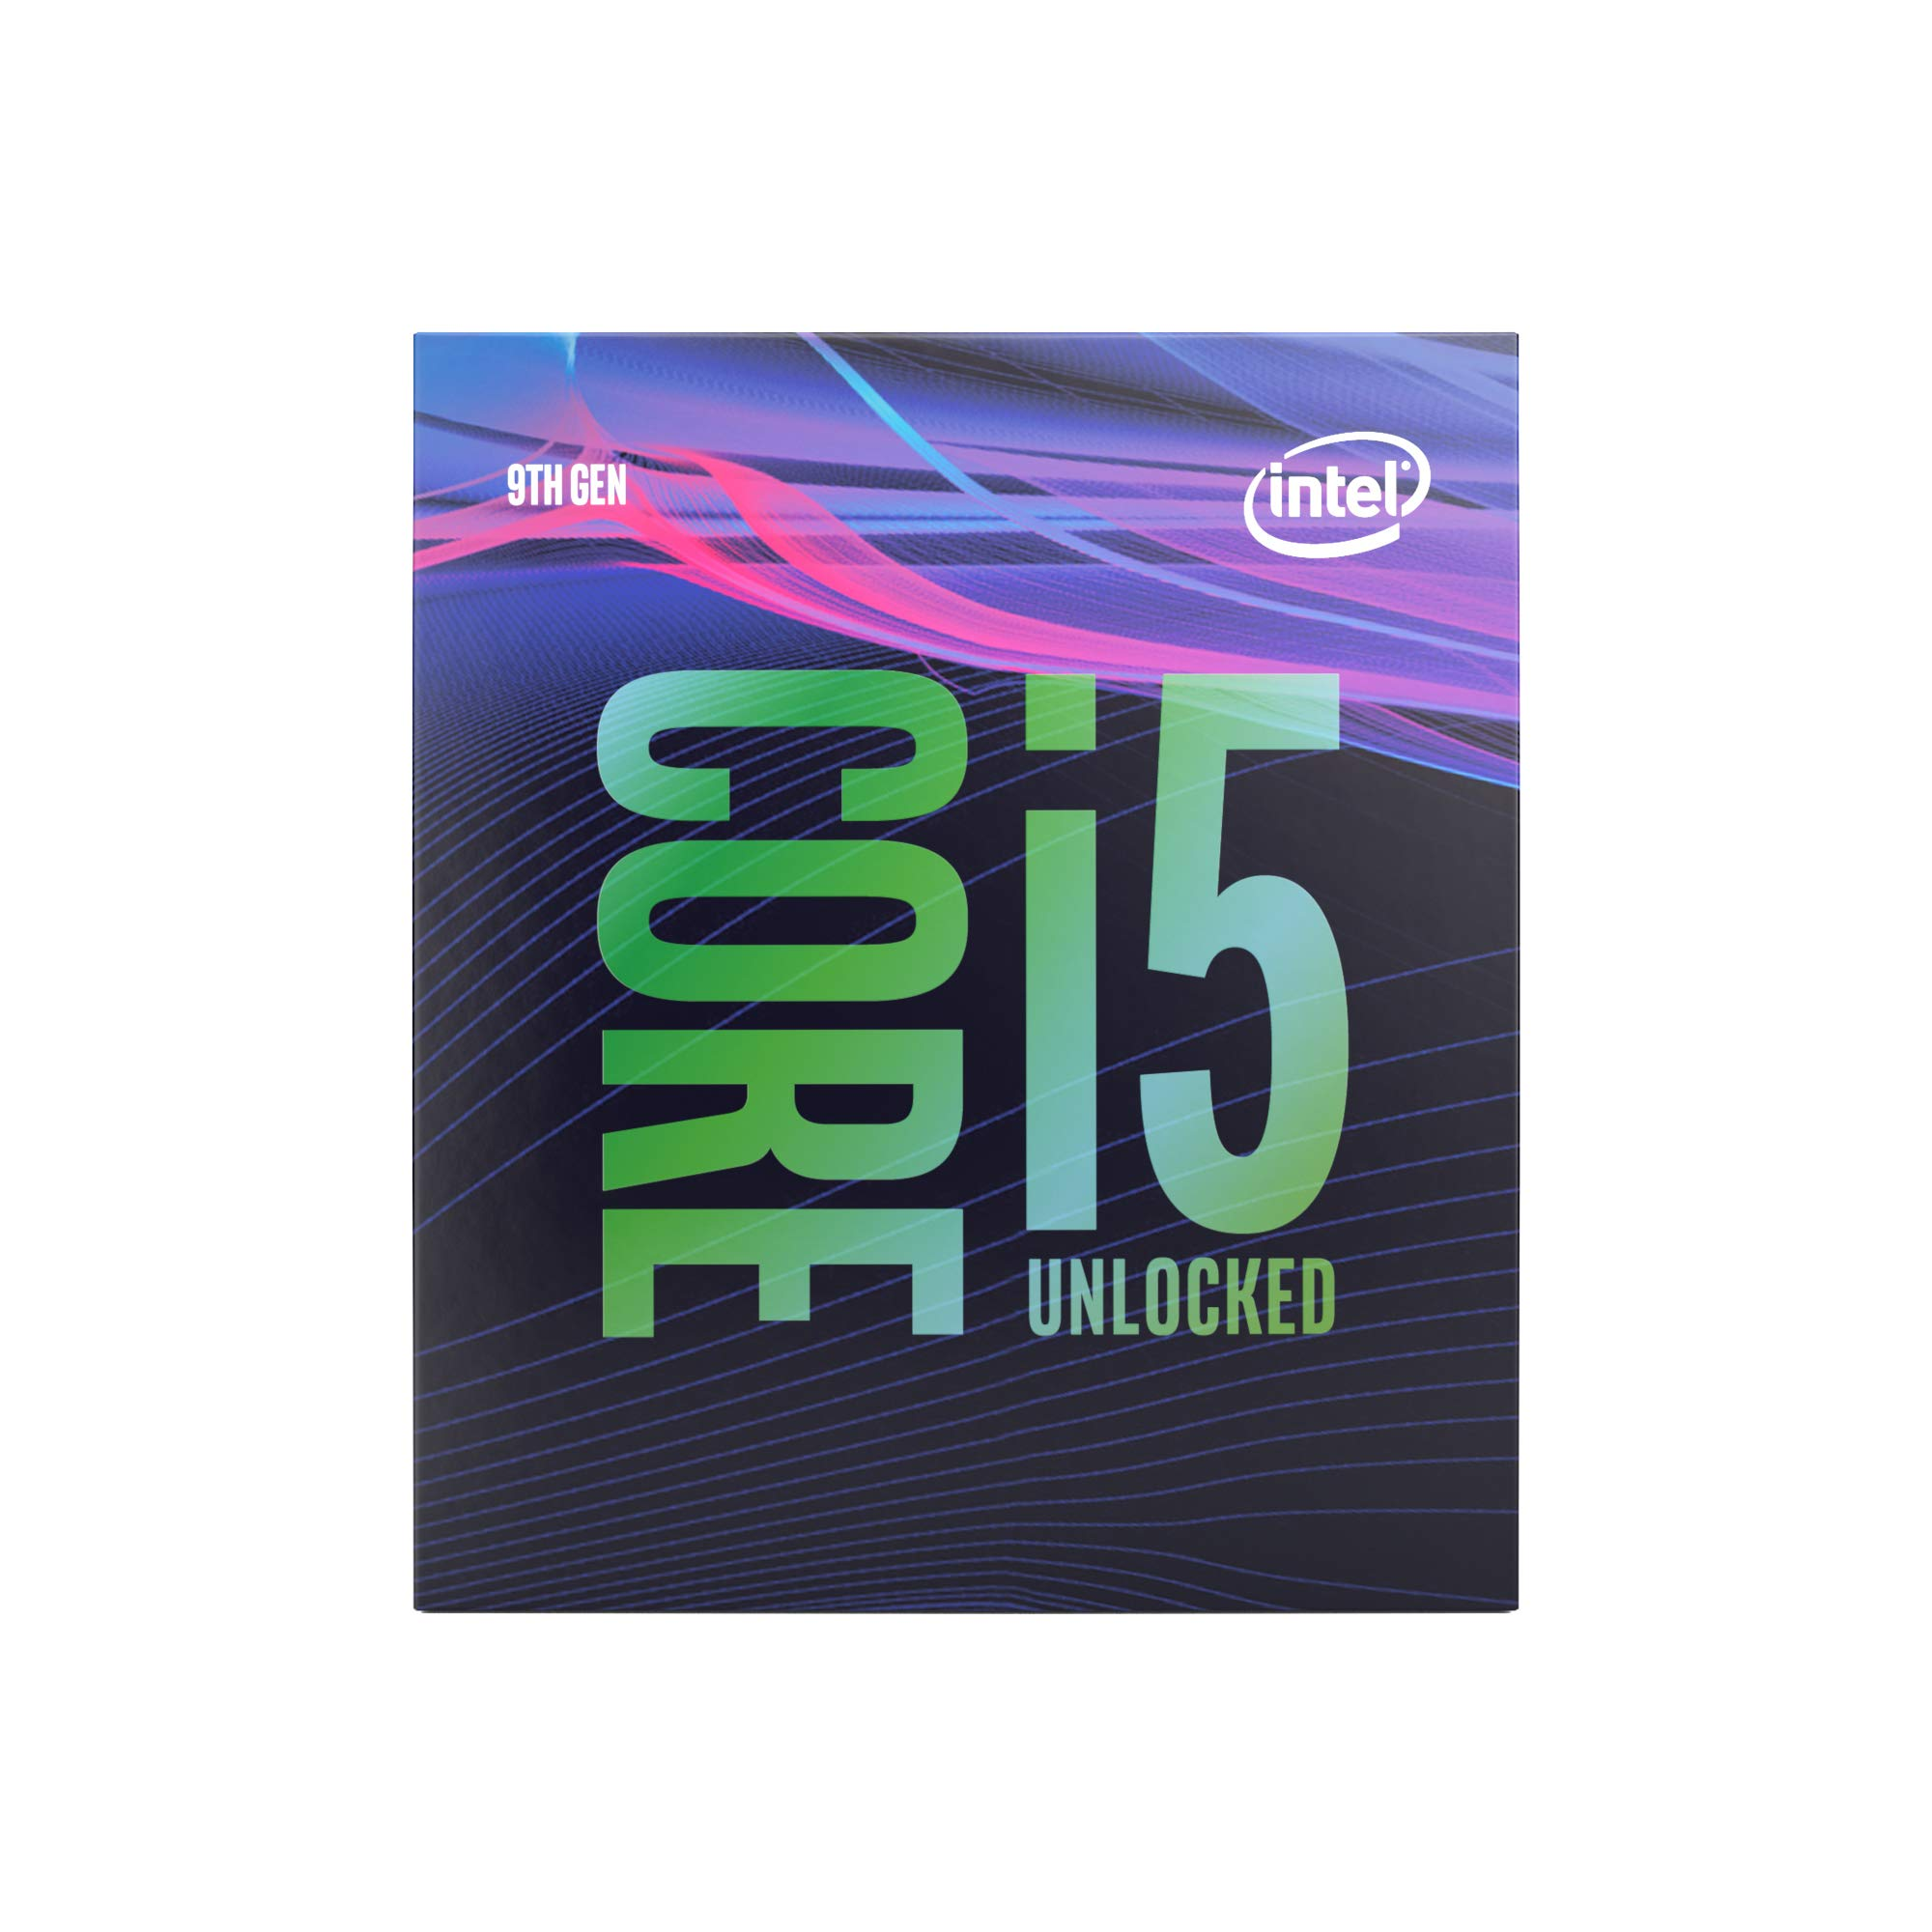 Intel Core i5-9600K 6 Cores up to 4.6 GHz Turbo Unlocked LGA